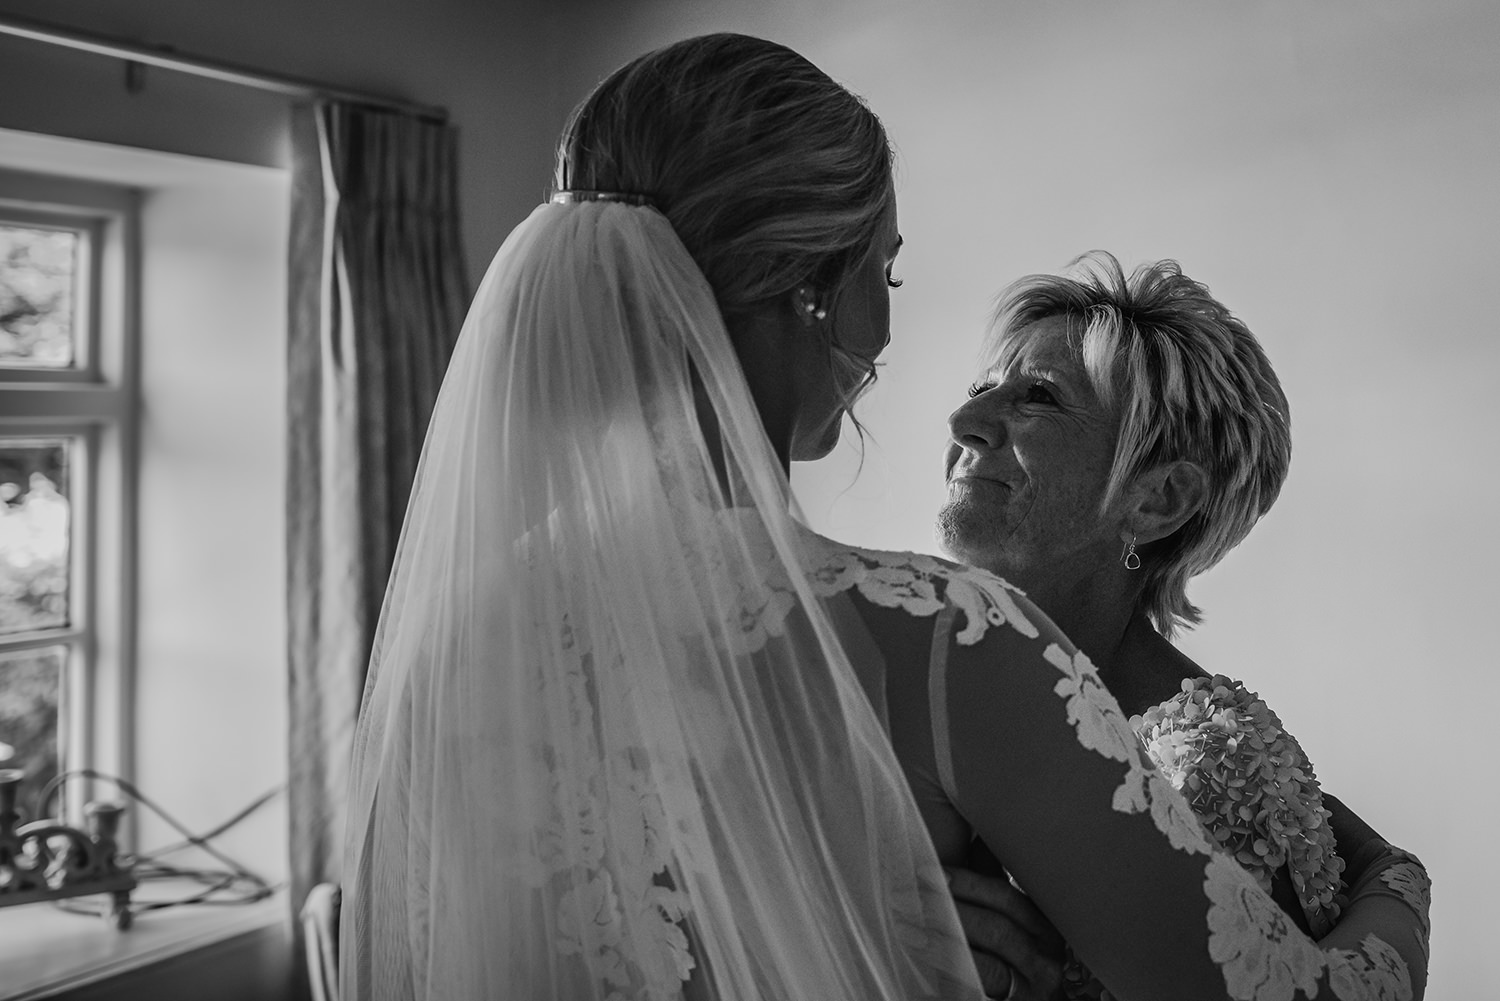 bw photo of bride's mum hugging bride and looking proud